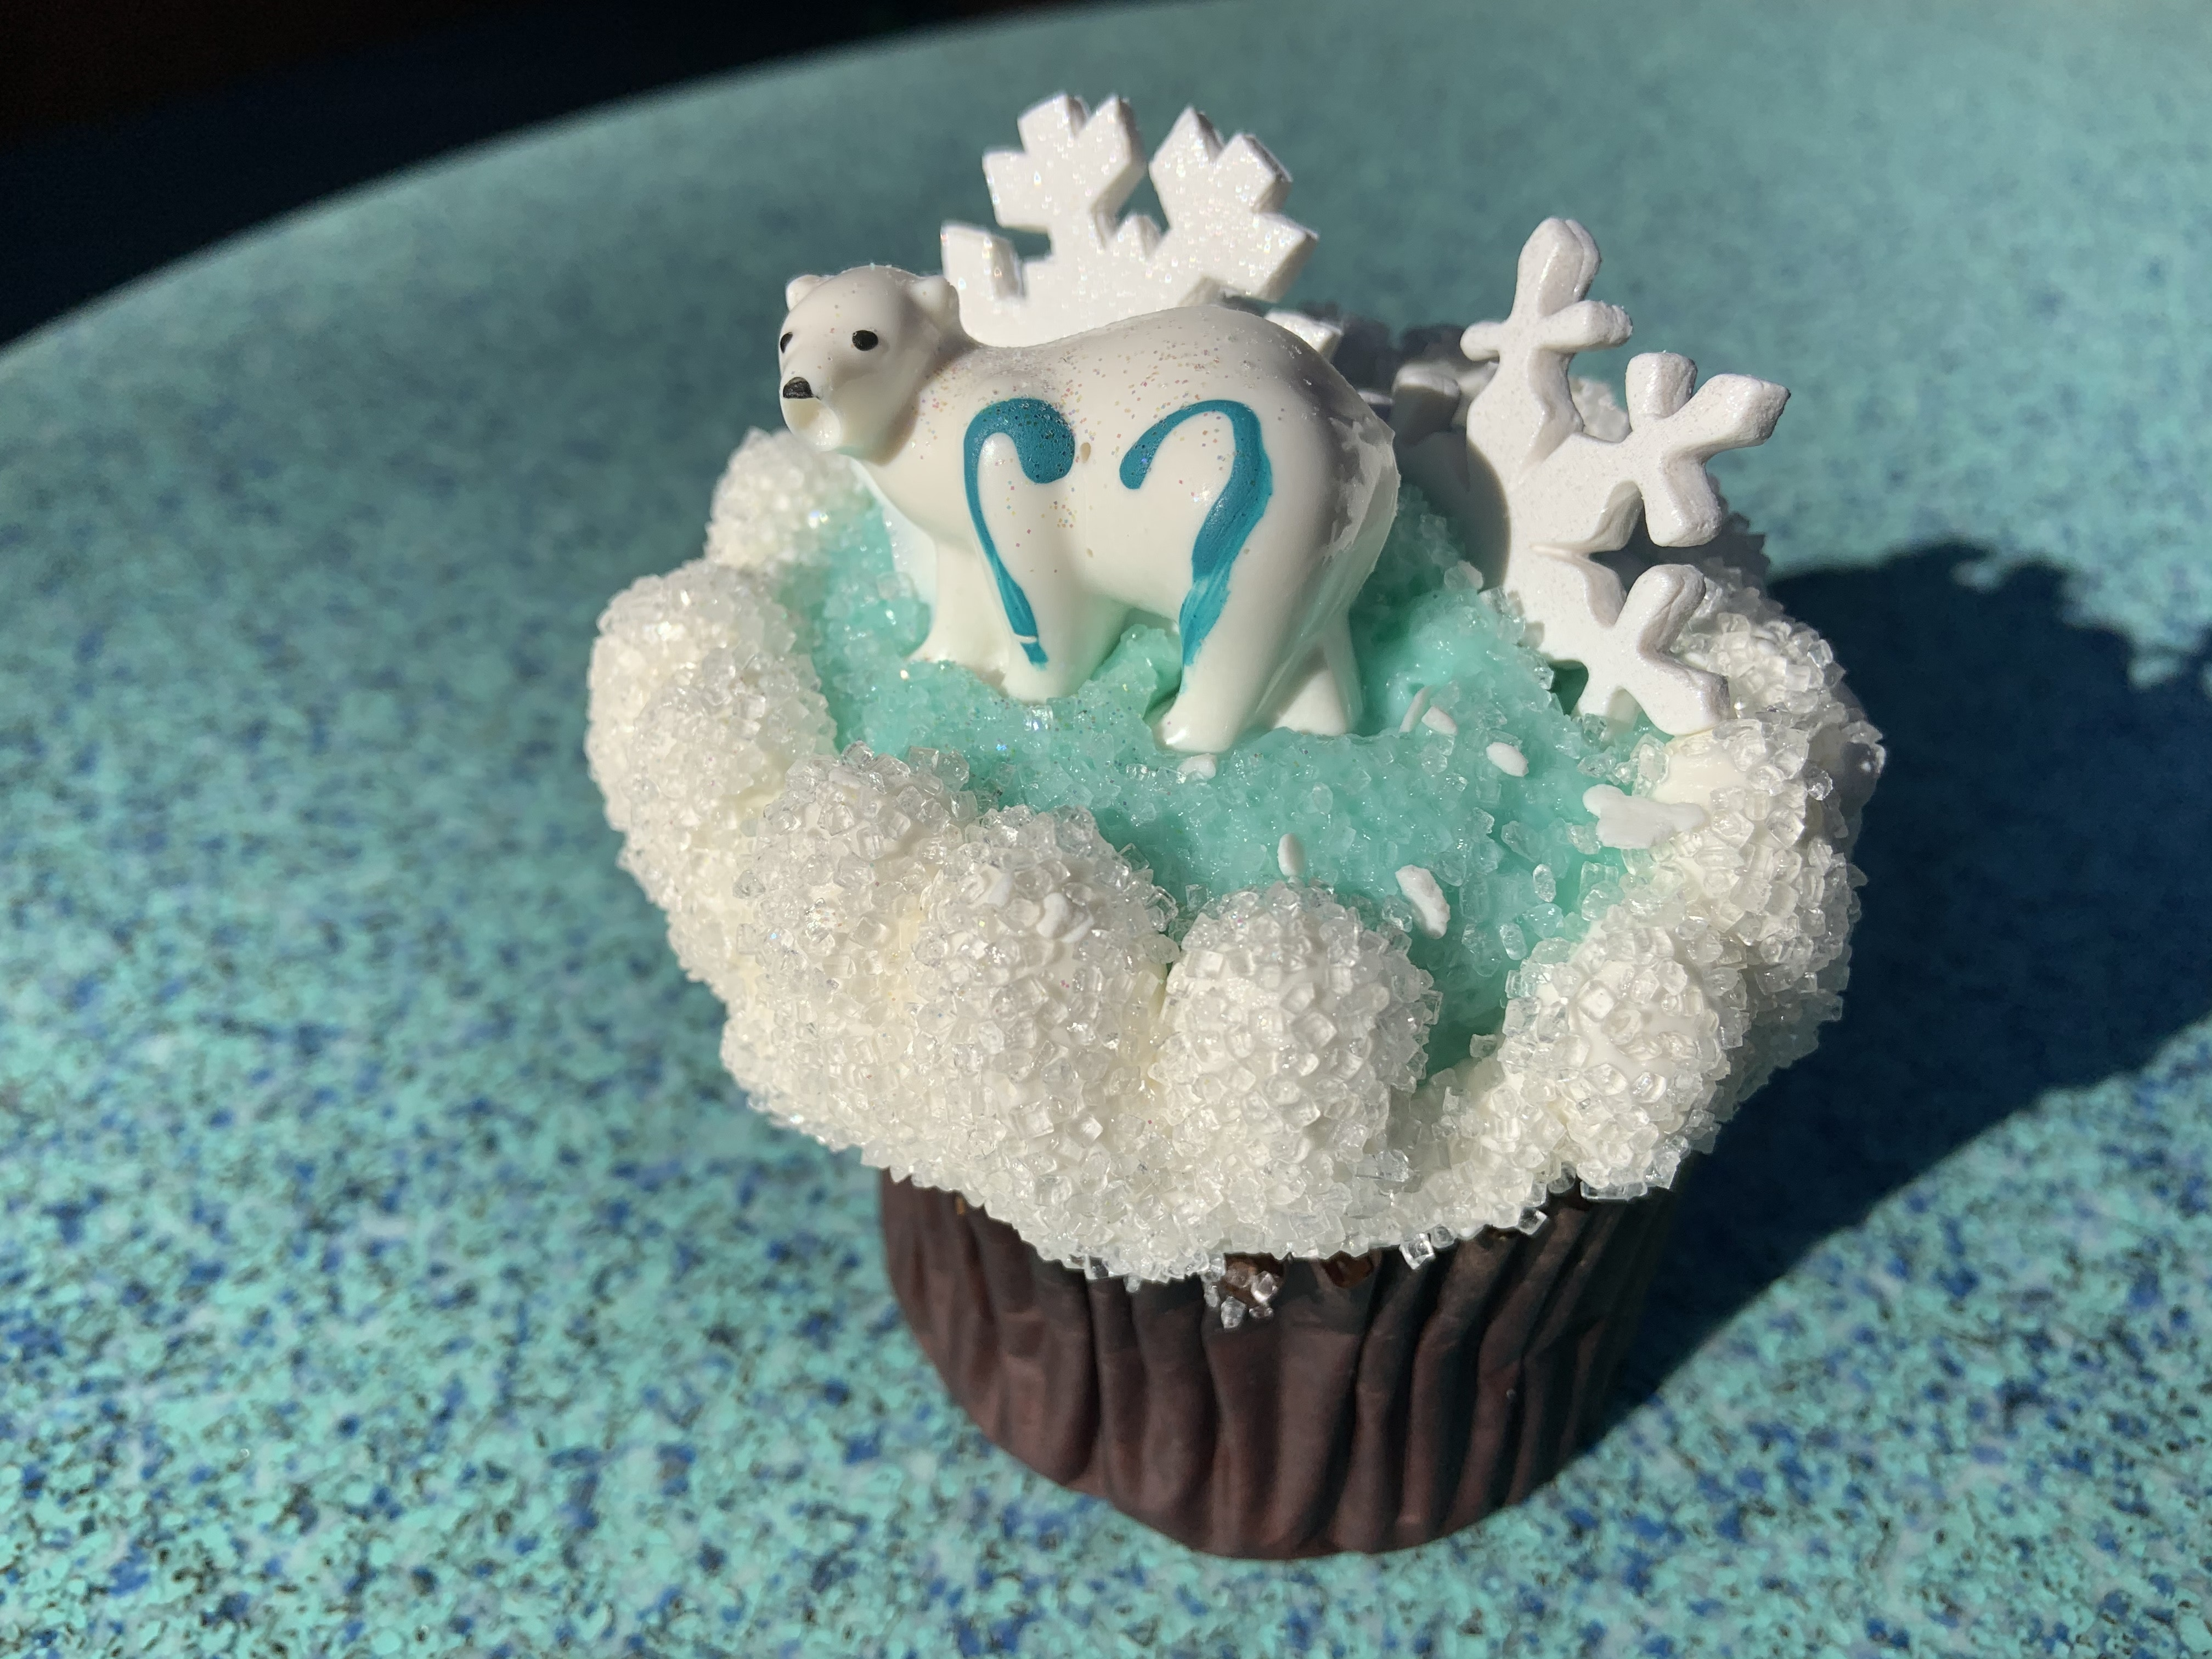 Merry Menagerie cupcake 12/7/19 11